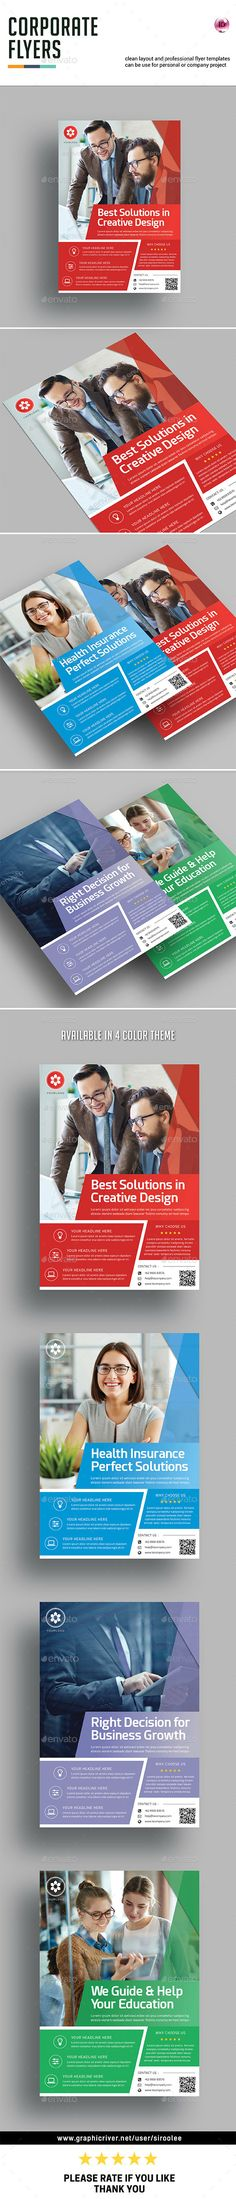 Corporate Flyer Template InDesign INDD. Download here: https://graphicriver.net/item/corporate-flyer-v03/17628208?ref=ksioks